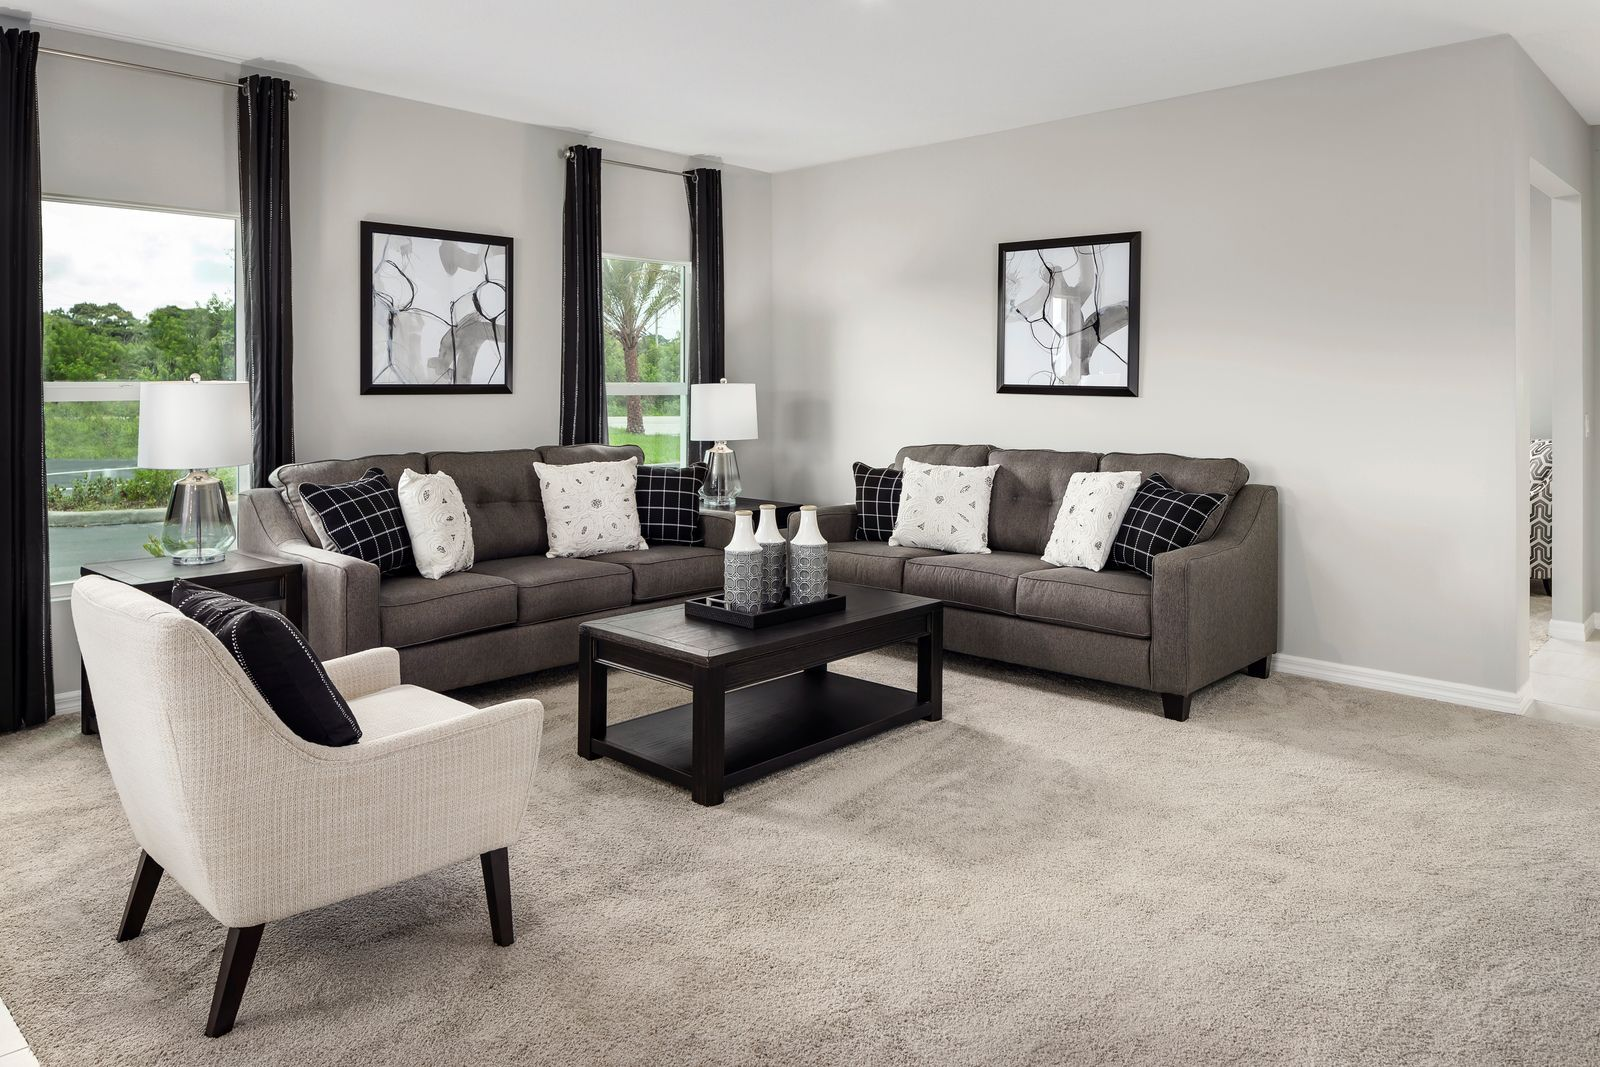 Living Area featured in the Key Largo By Ryan Homes in Martin-St. Lucie-Okeechobee Counties, FL